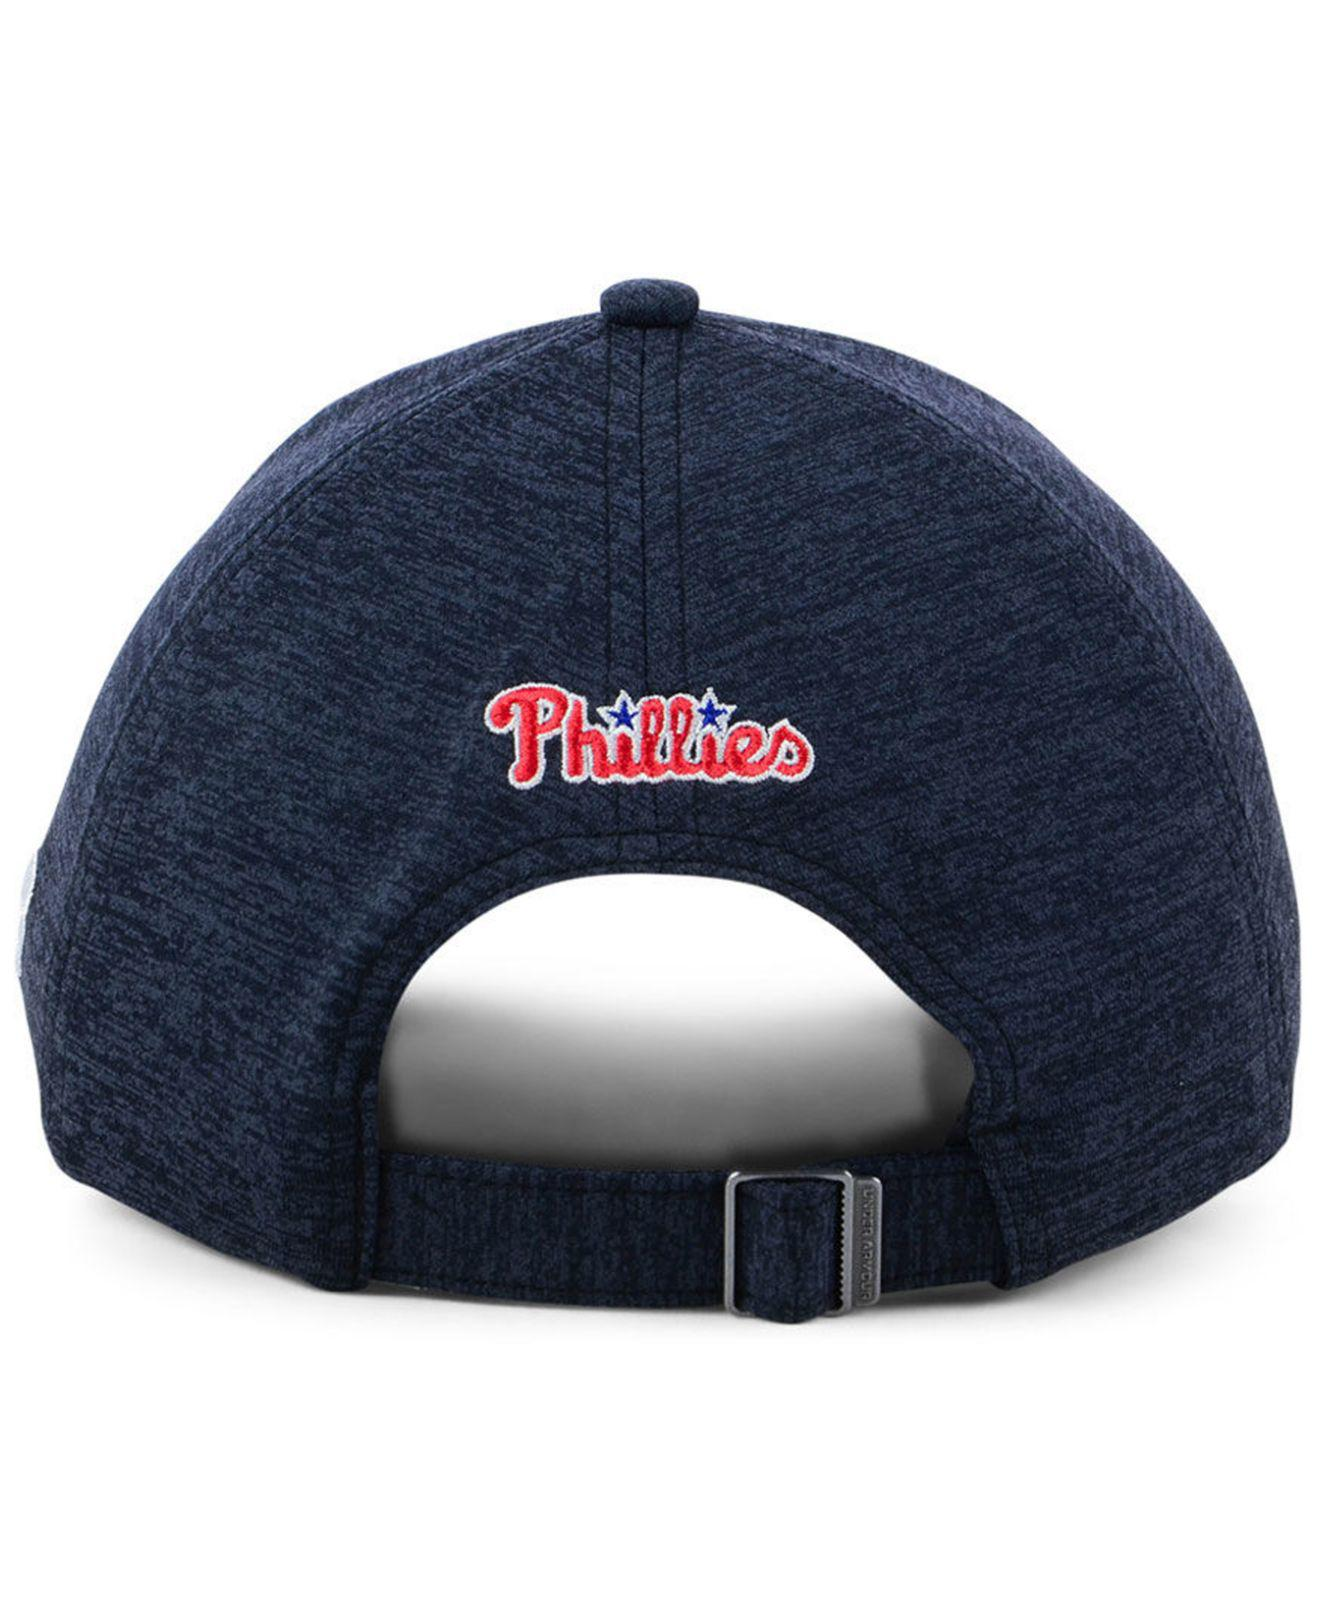 detailed look 77190 ac4bc Under Armour Philadelphia Phillies Renegade Twist Cap in Blue - Lyst